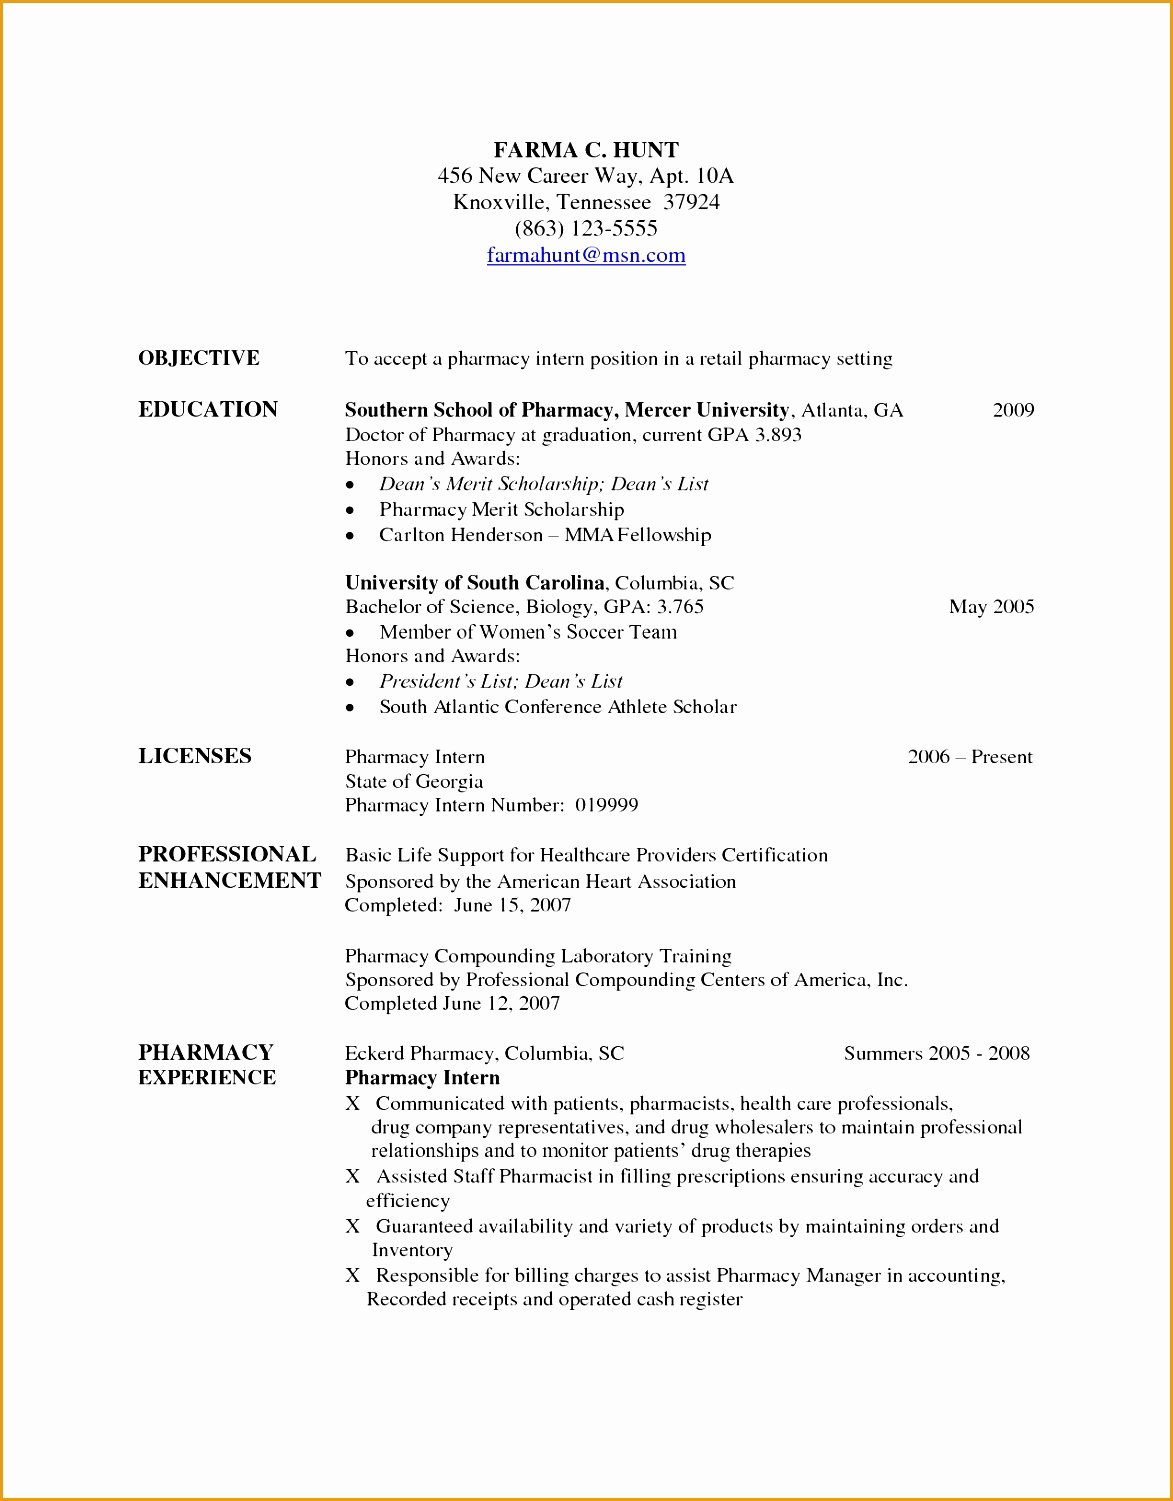 Pharmacy Curriculum Vitae Template Unique 7 Pharmacist Curriculum Vitae Templates Free Samples